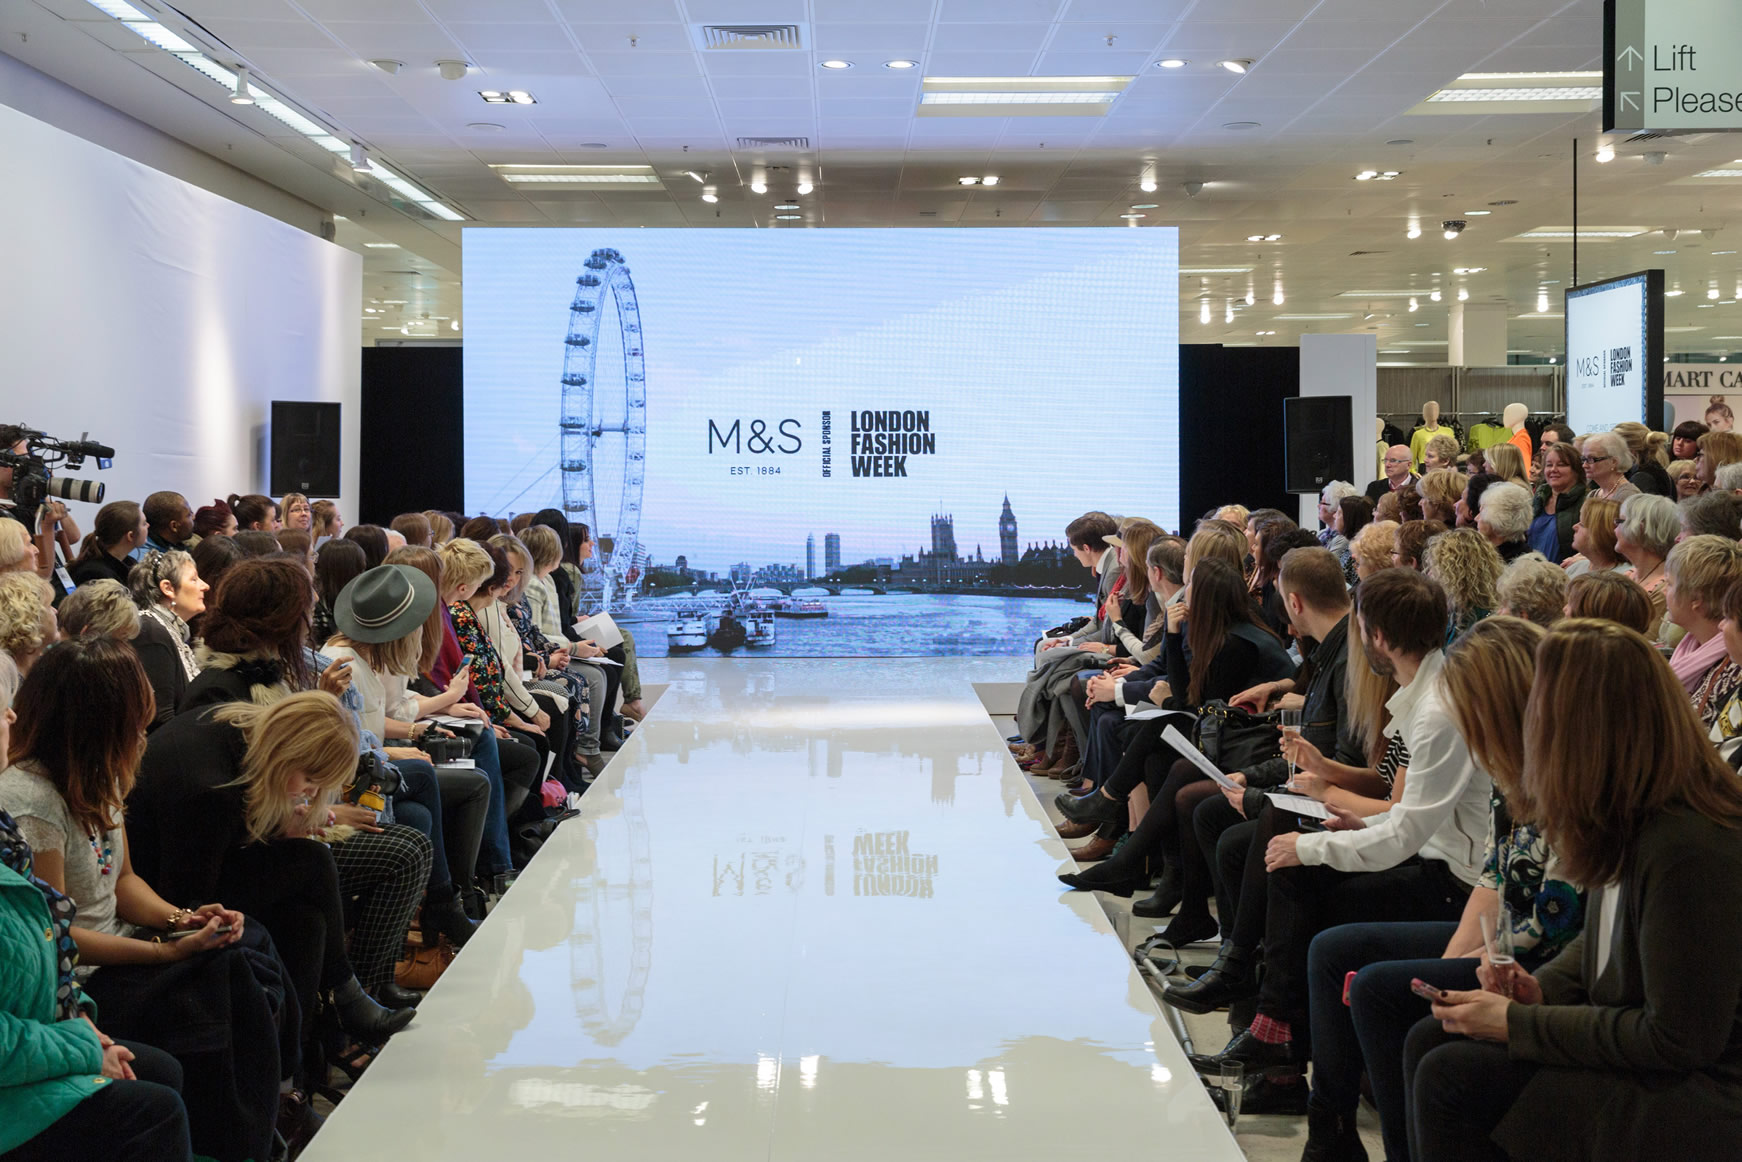 M&S London Fashion Week